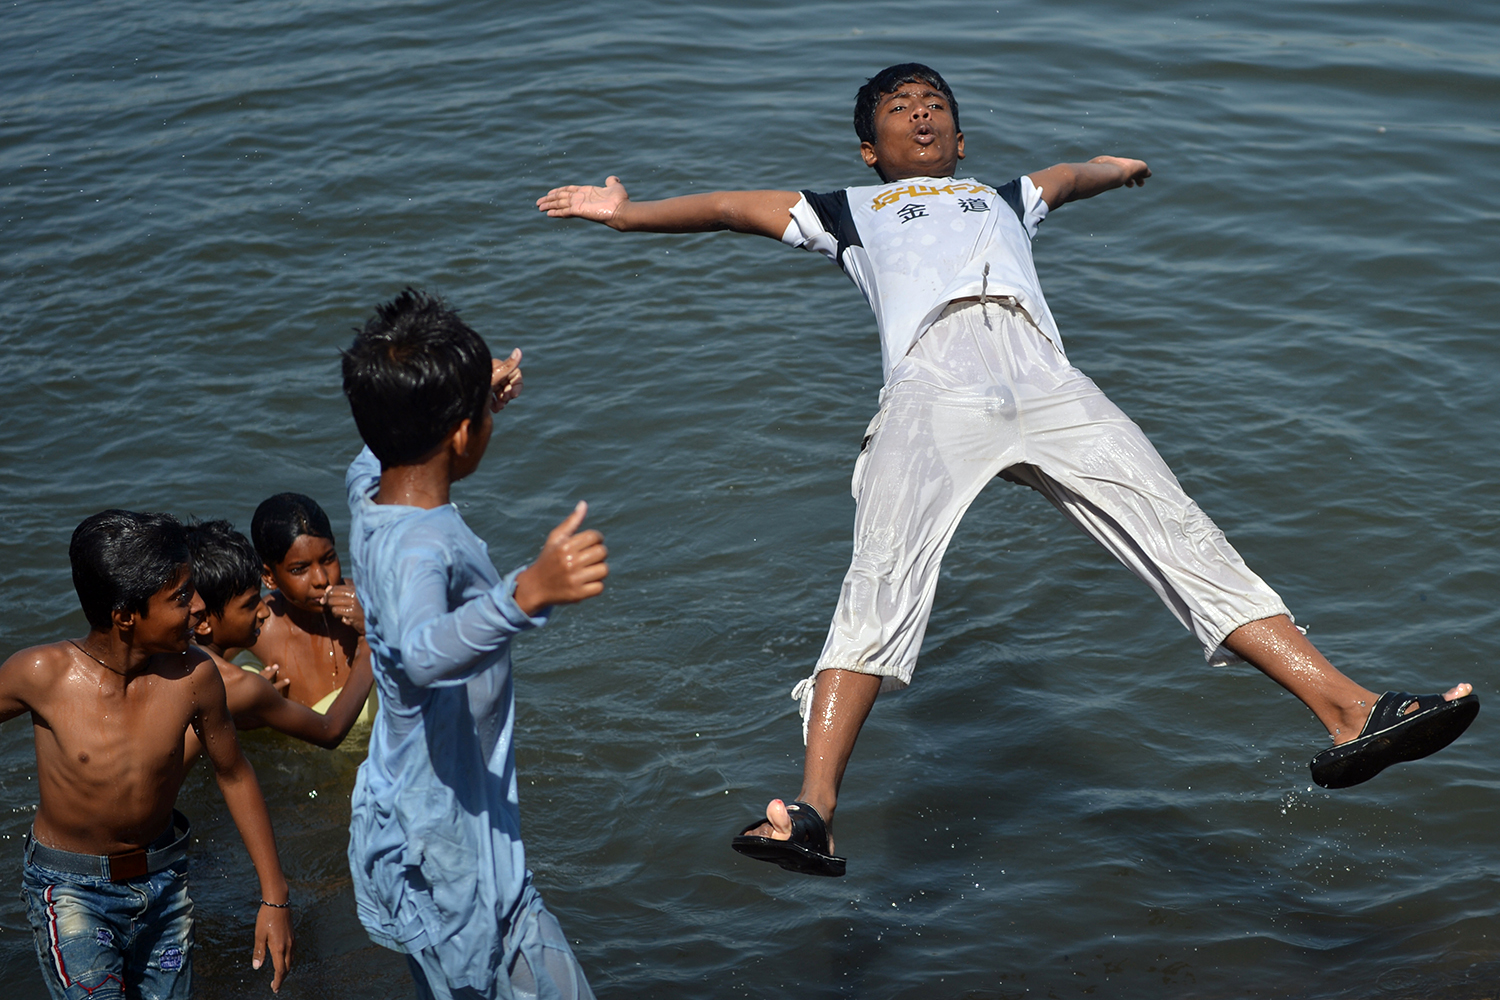 A young boy jumps into the Arabian Sea along a street in Karachi, Pakistan, on April 29. RIZWAN TABASSUM/AFP via Getty Images